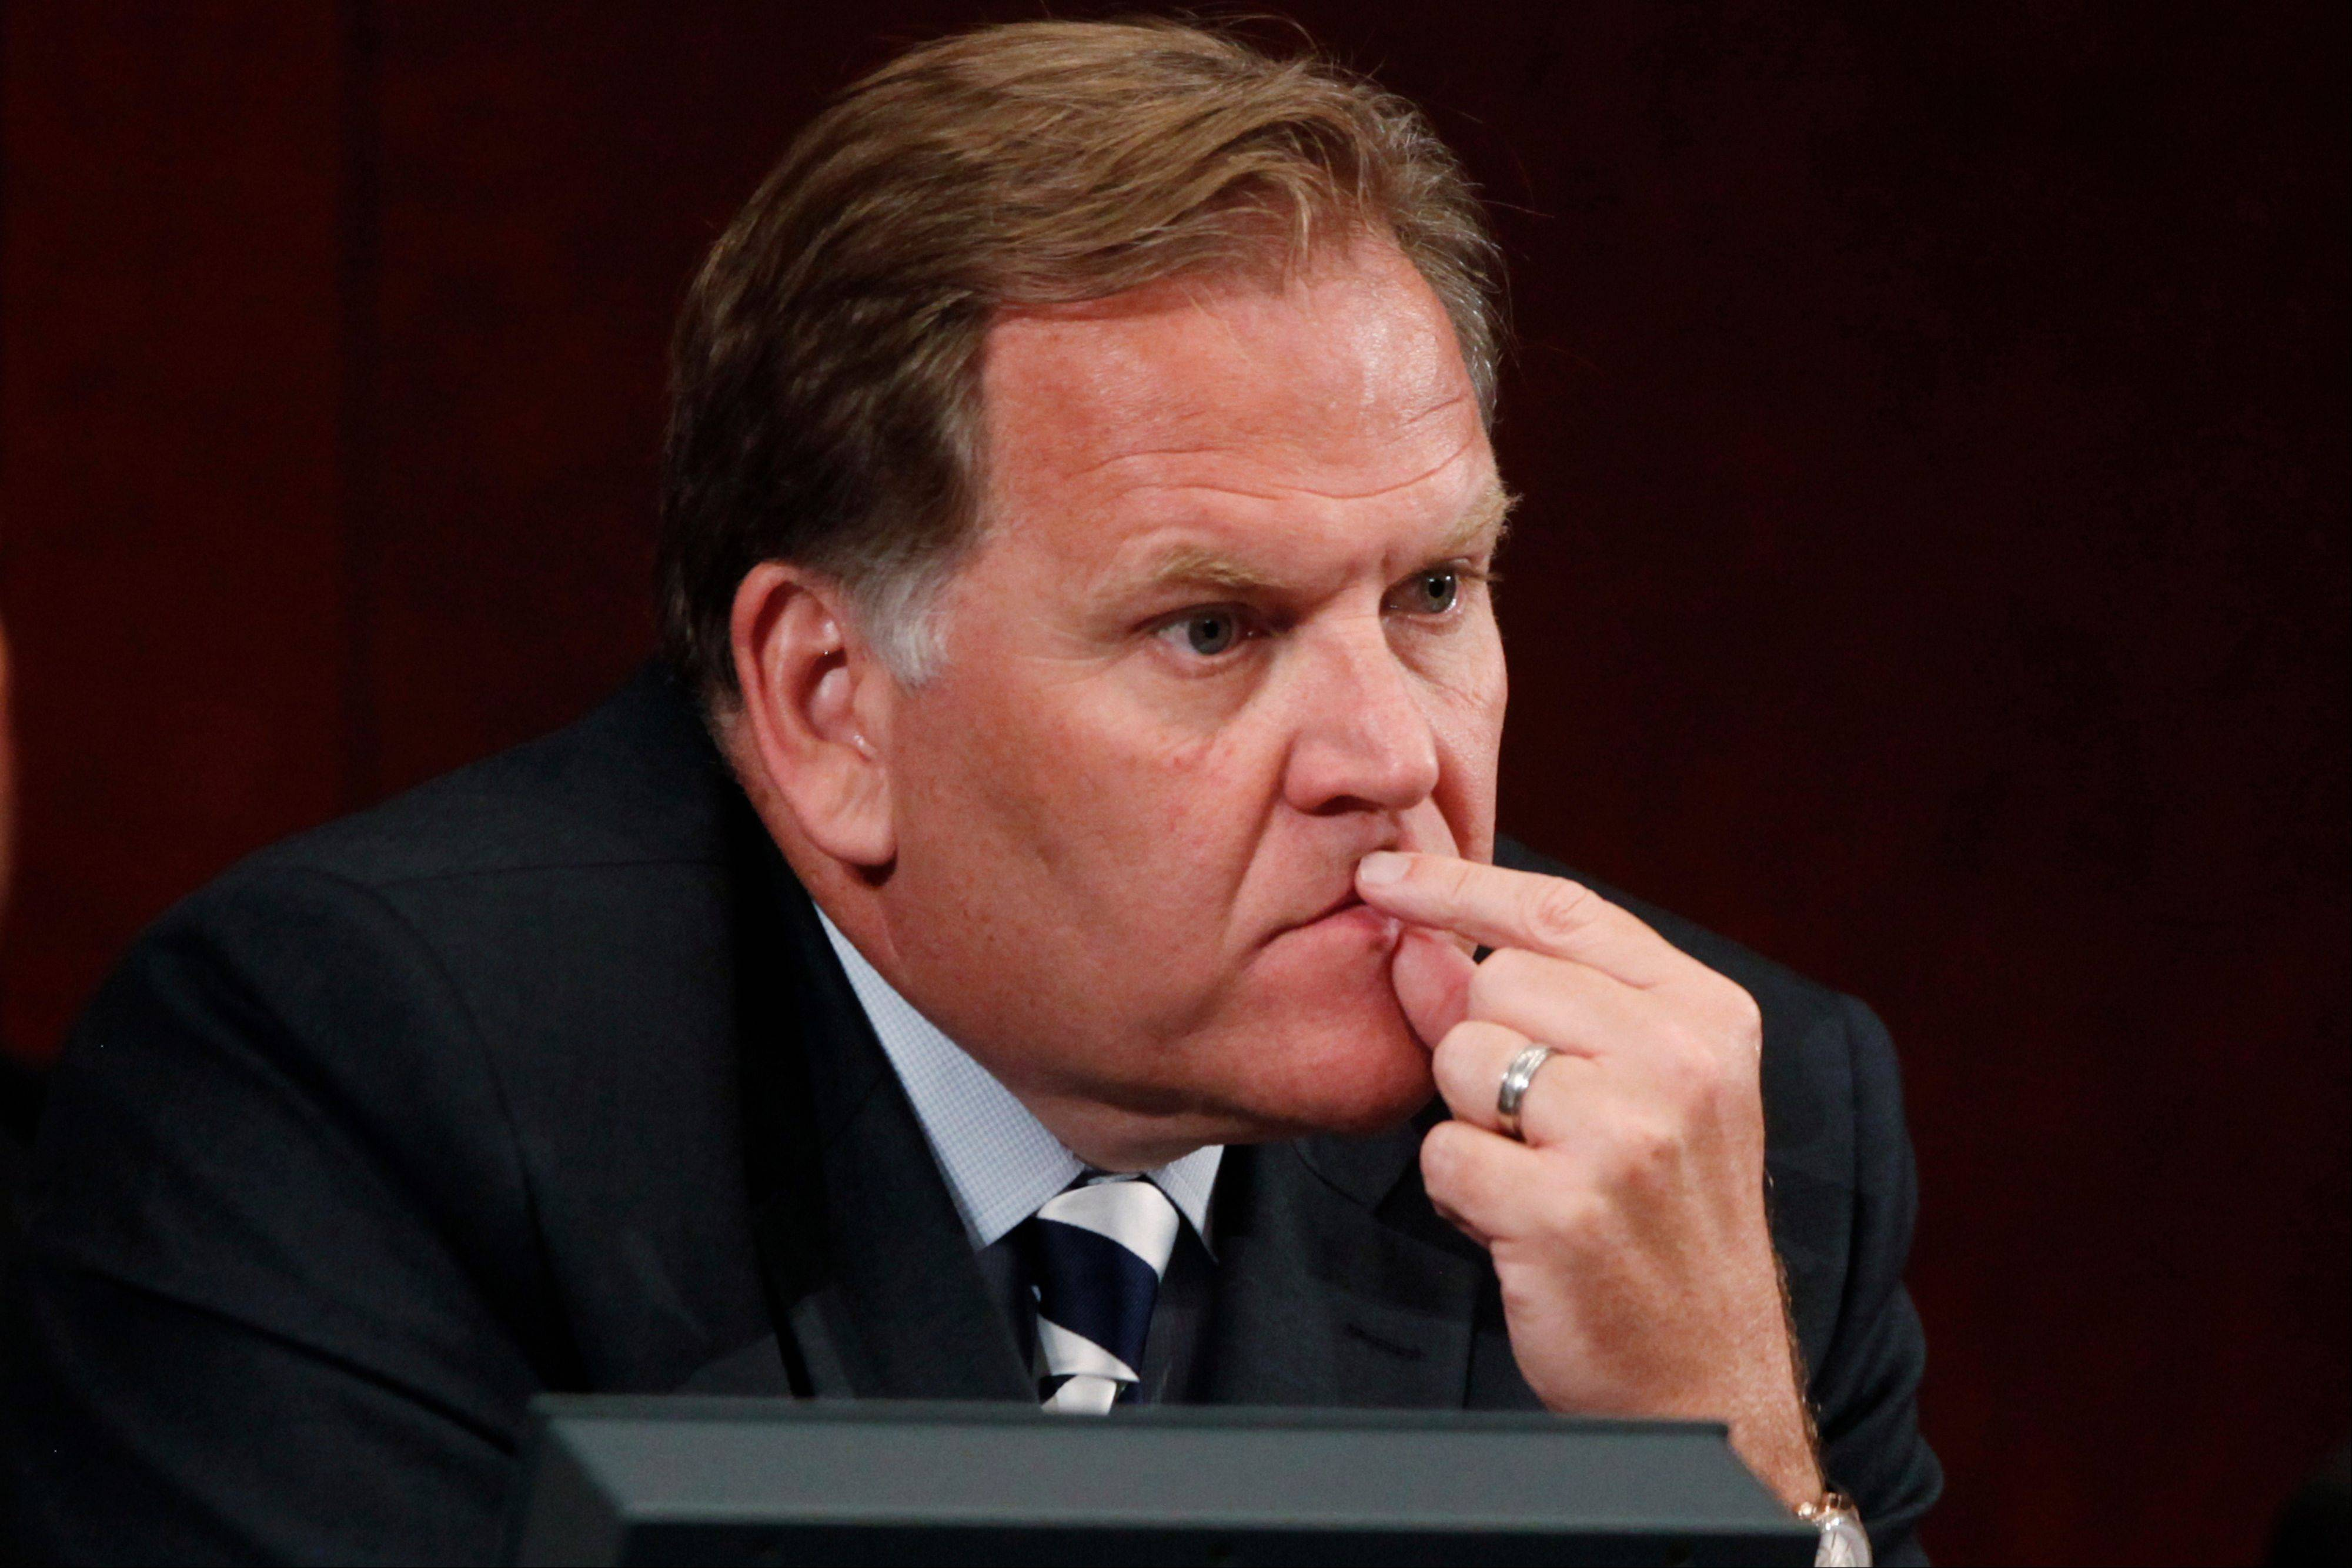 Republican Rep. Mike Rogers of Michigan, chairman of the House Intelligence Committee, said Edward Snowden's release of classified documents jeopardized the safety of troops in Afghanistan and gave nations such as China and Russia valuable insight into how America's intelligence services operate.